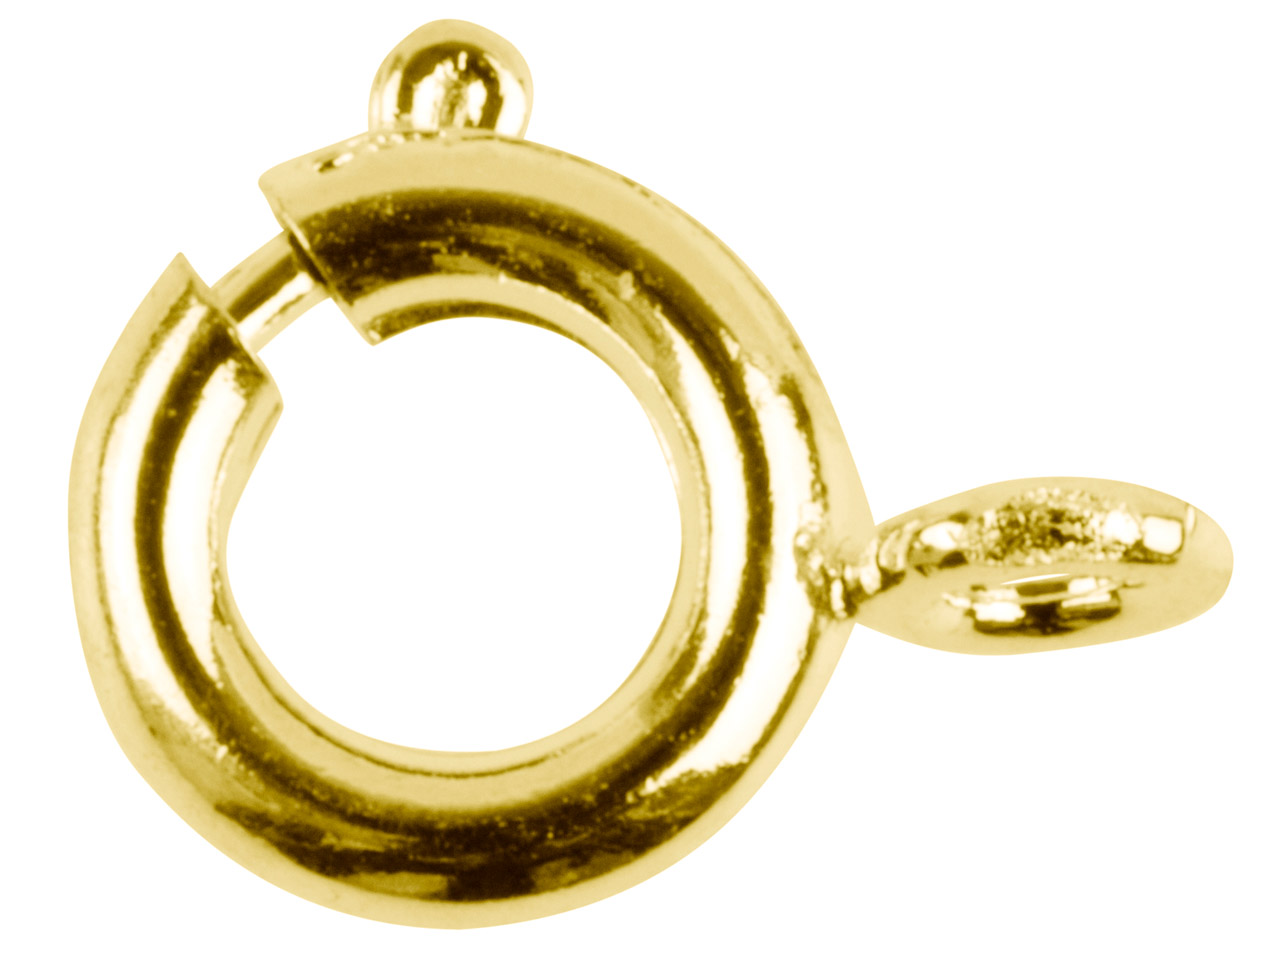 Gold Plated Bolt Rings 9mm         Pack of 10